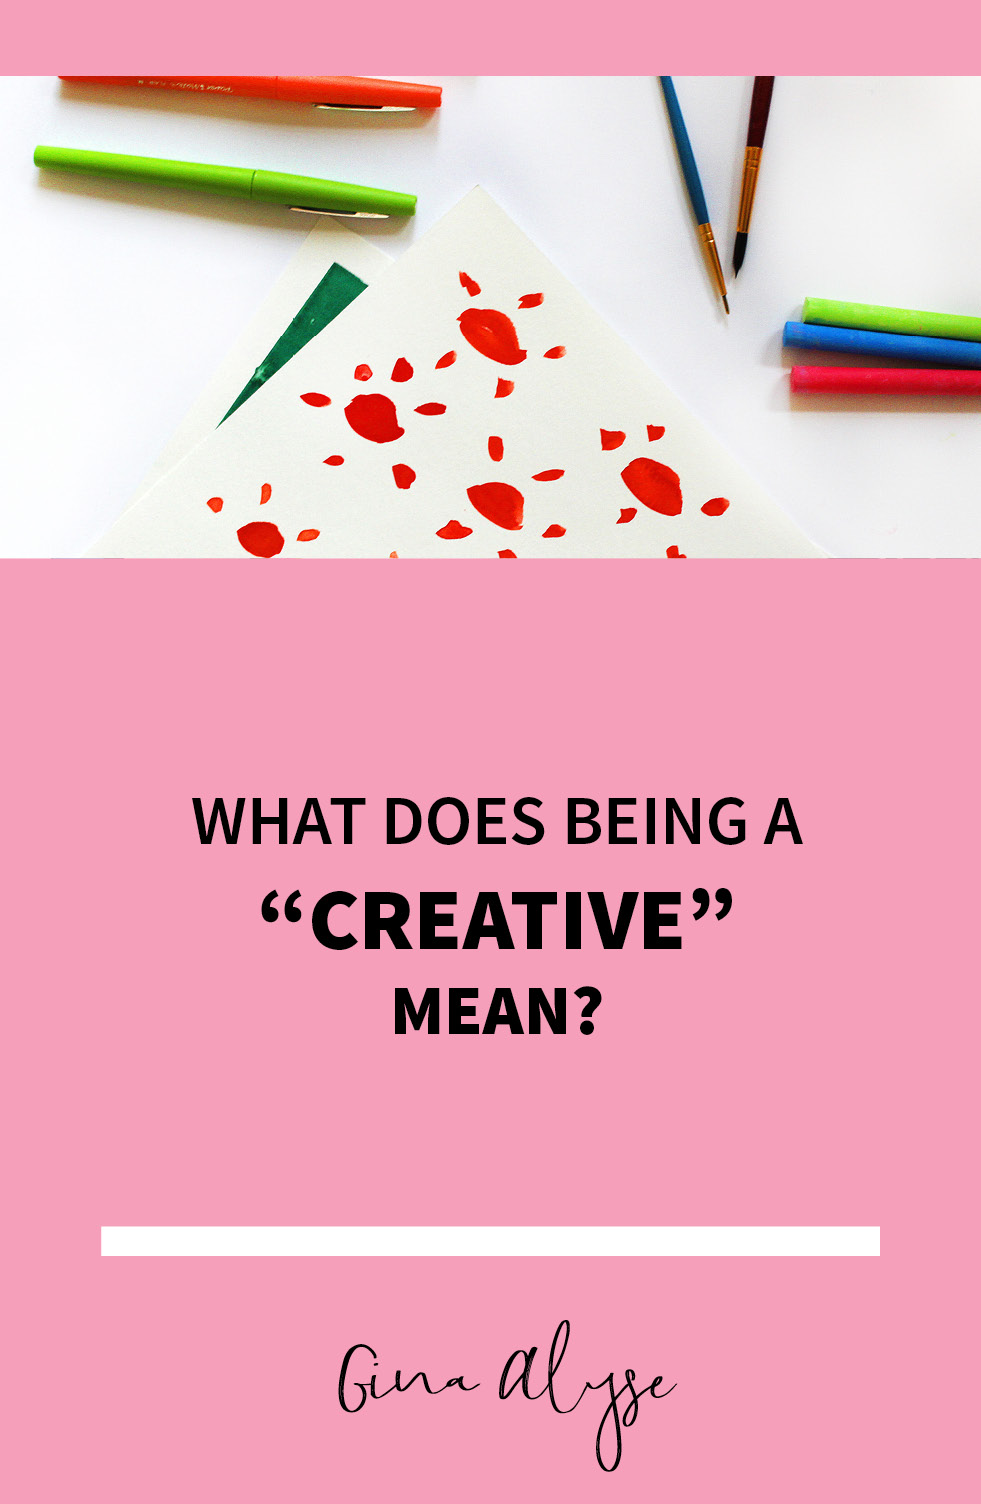 What Does Being a Creative Mean?